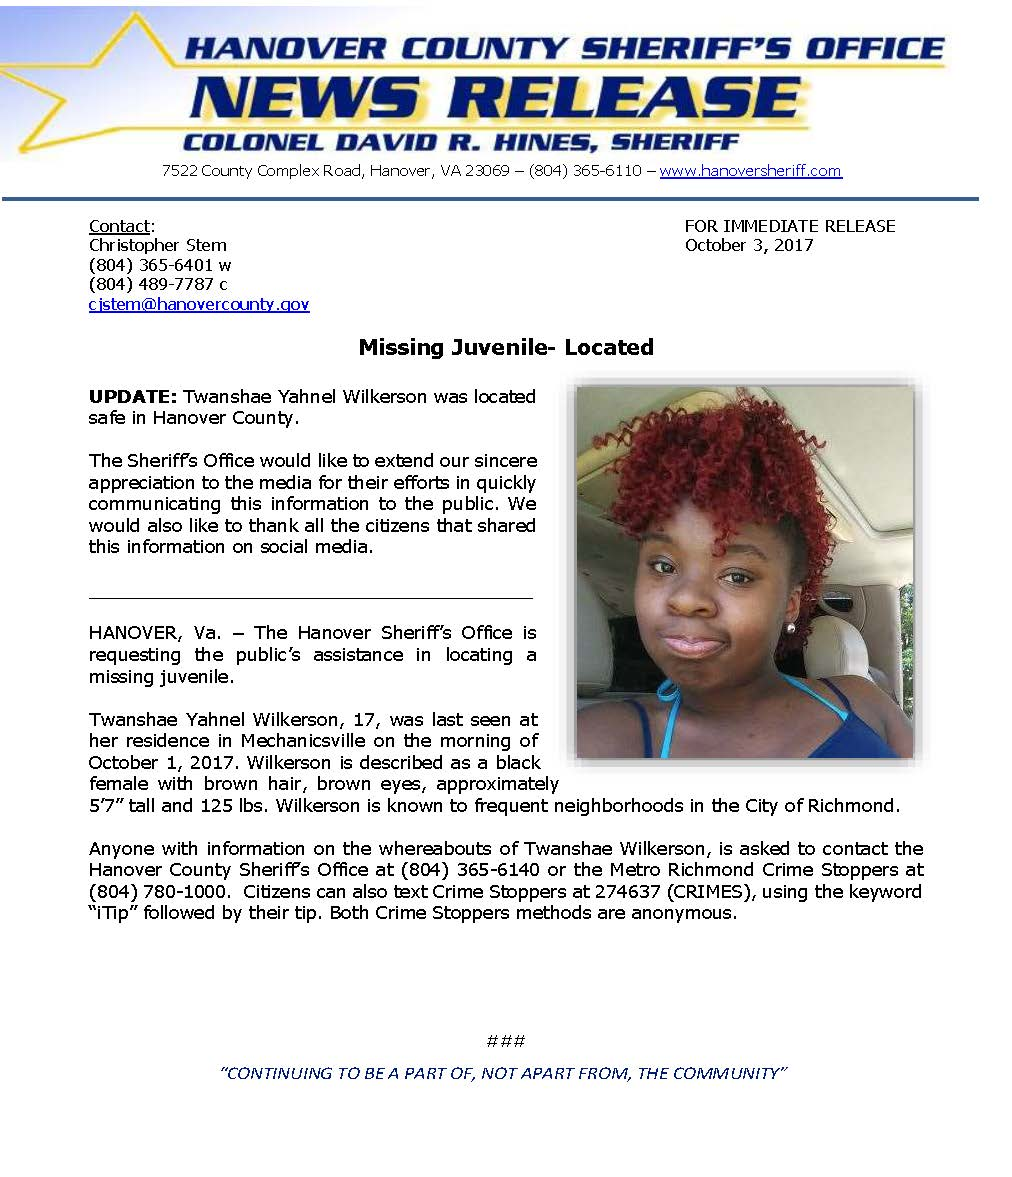 HCSO - Missing Juvenile Twanshae Wilkerson_October 2, 2017 LOCATED